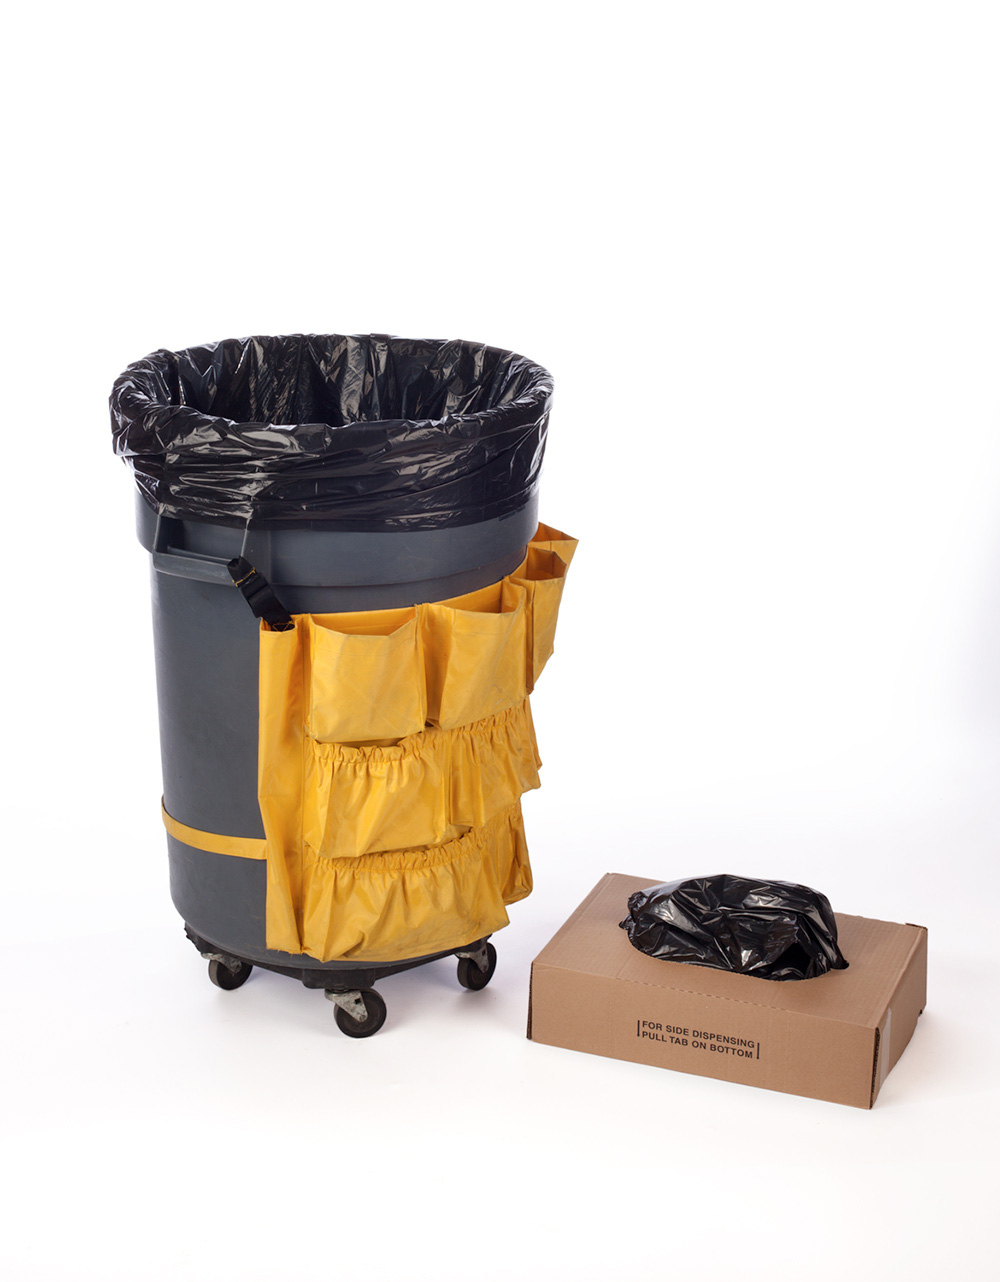 trash-hd-lld-barrel-blk.jpg